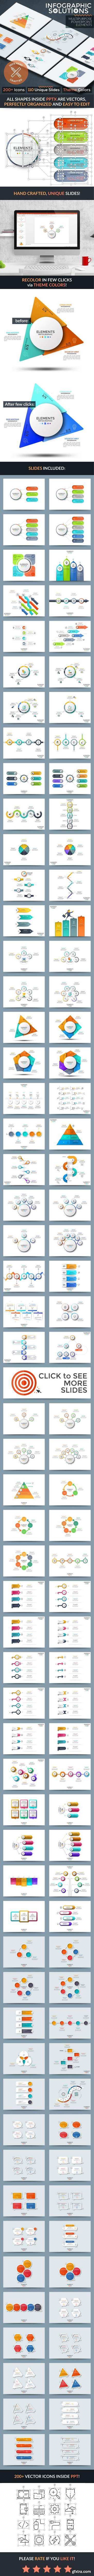 Graphicriver - Infographic Solutions. Powerpoint Template 22087401